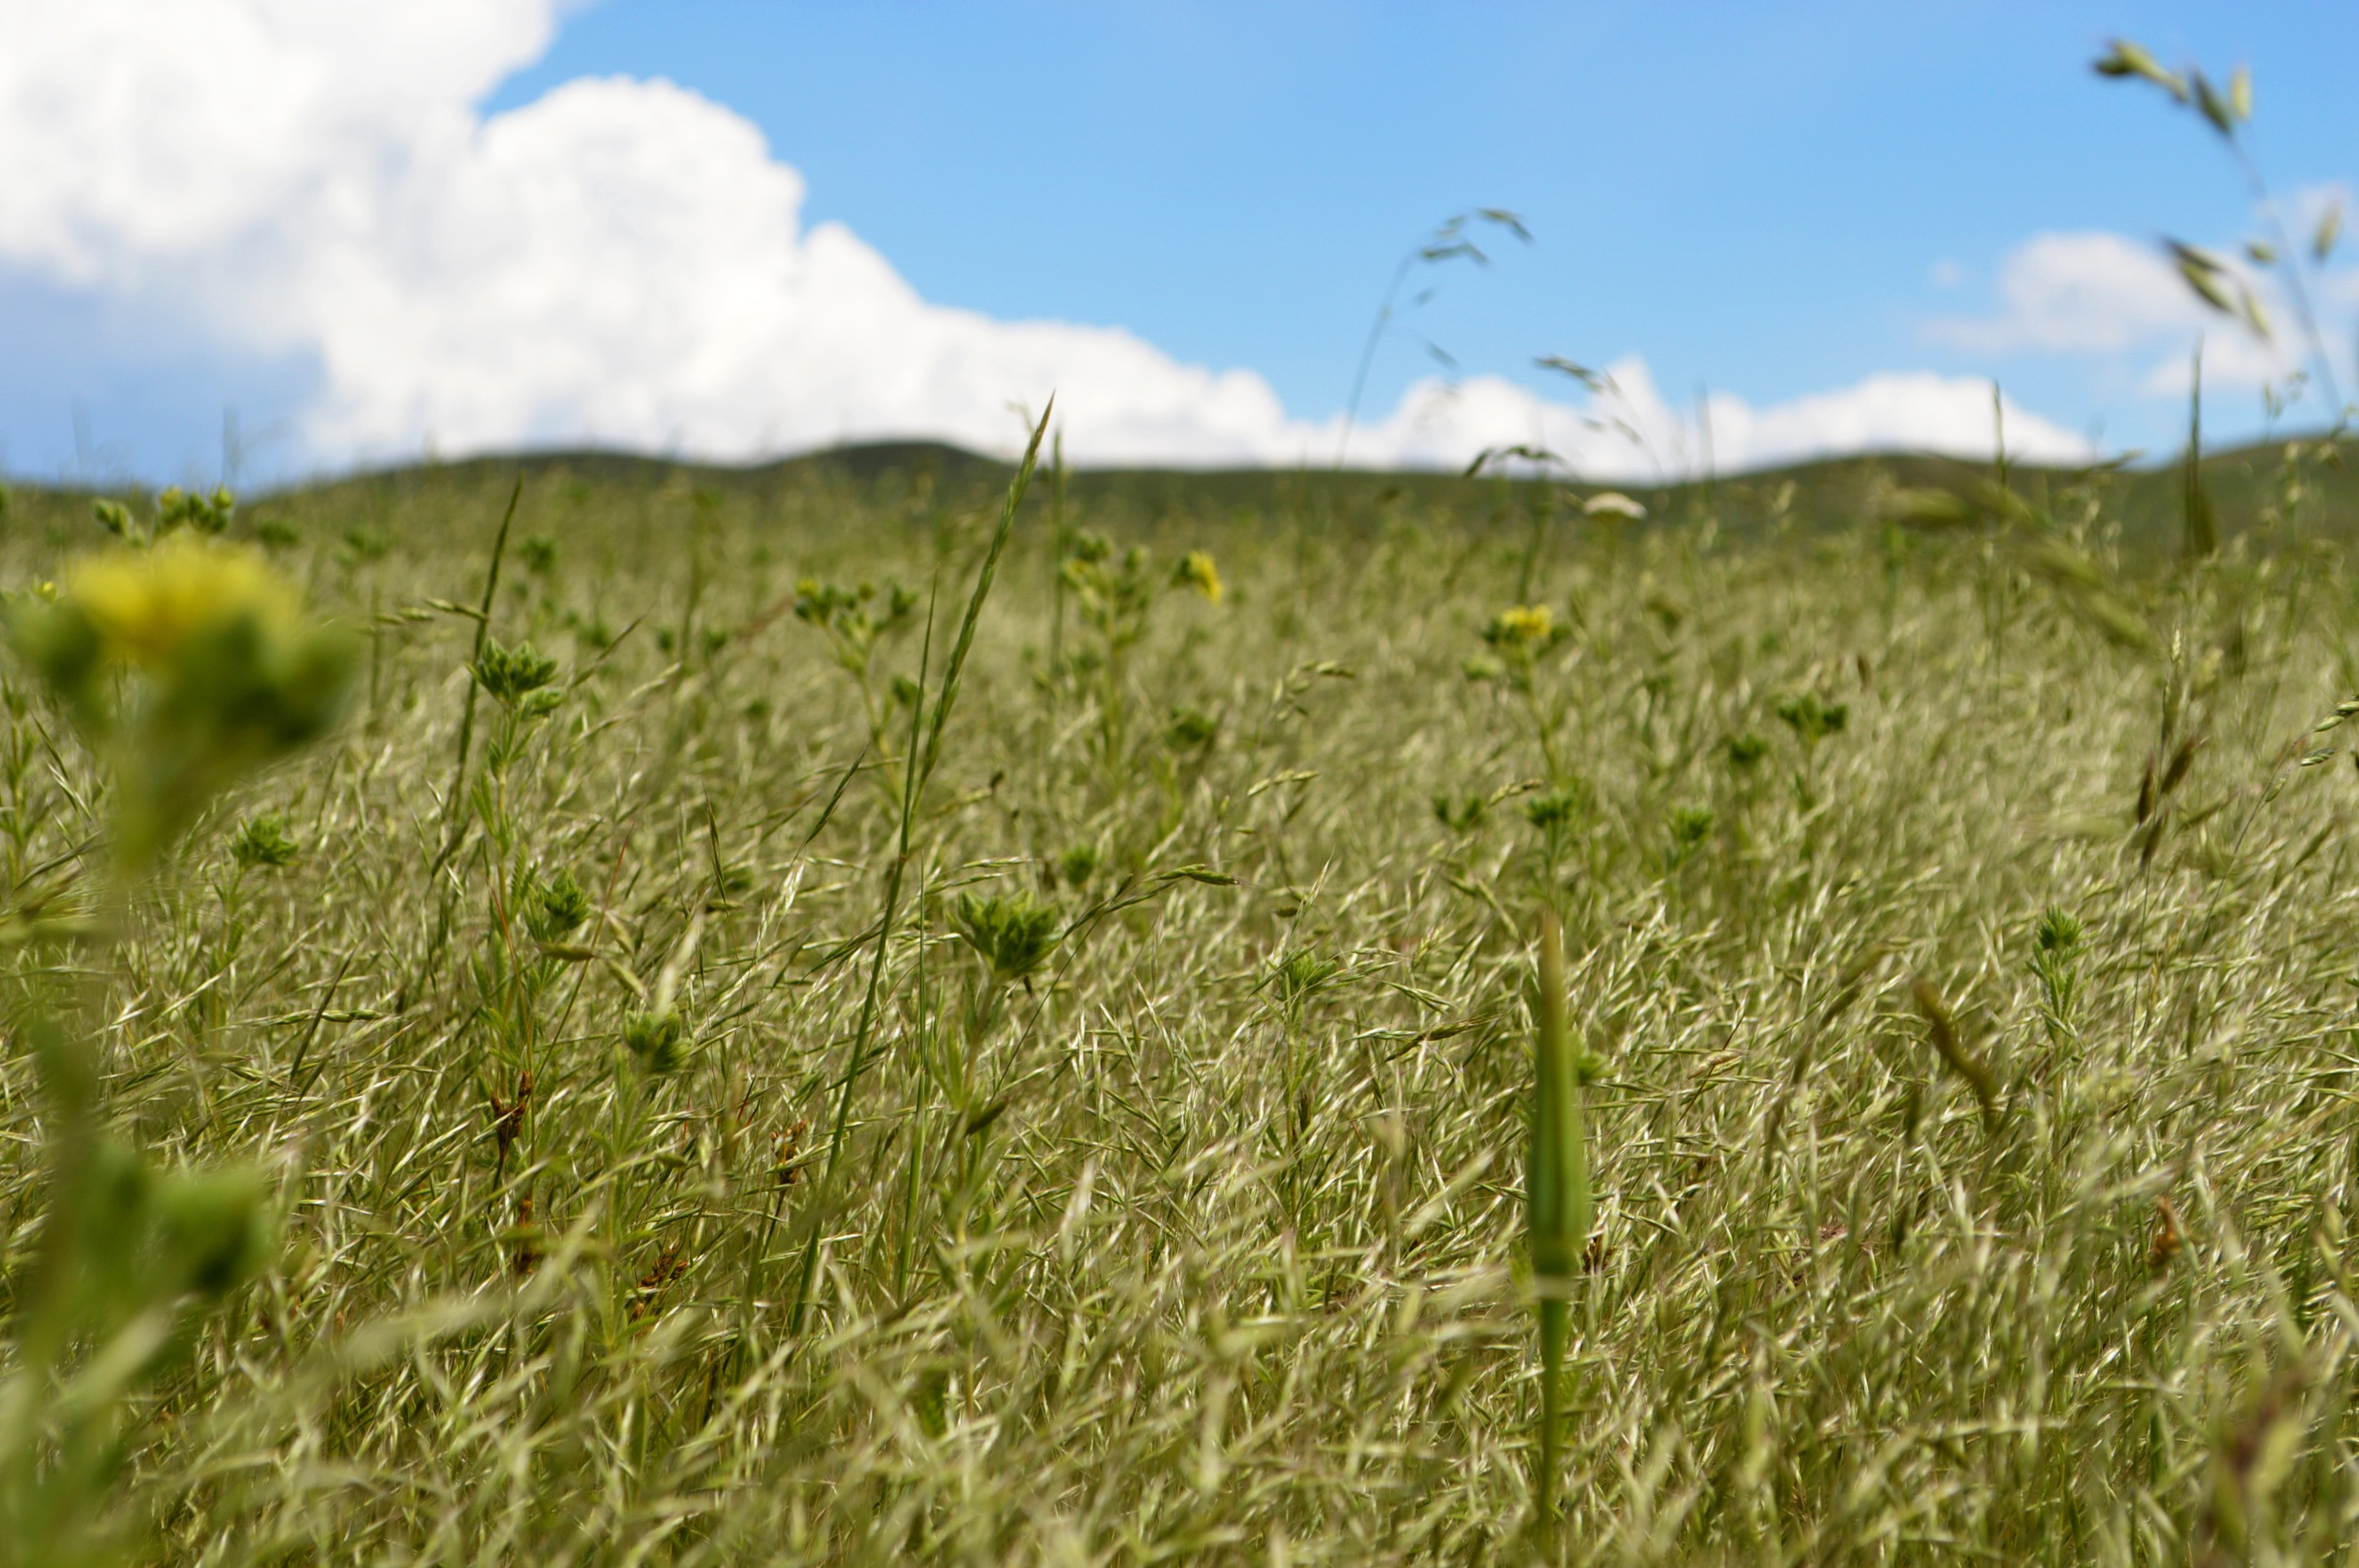 A green field full of plants below blue skies and white billowy clouds.